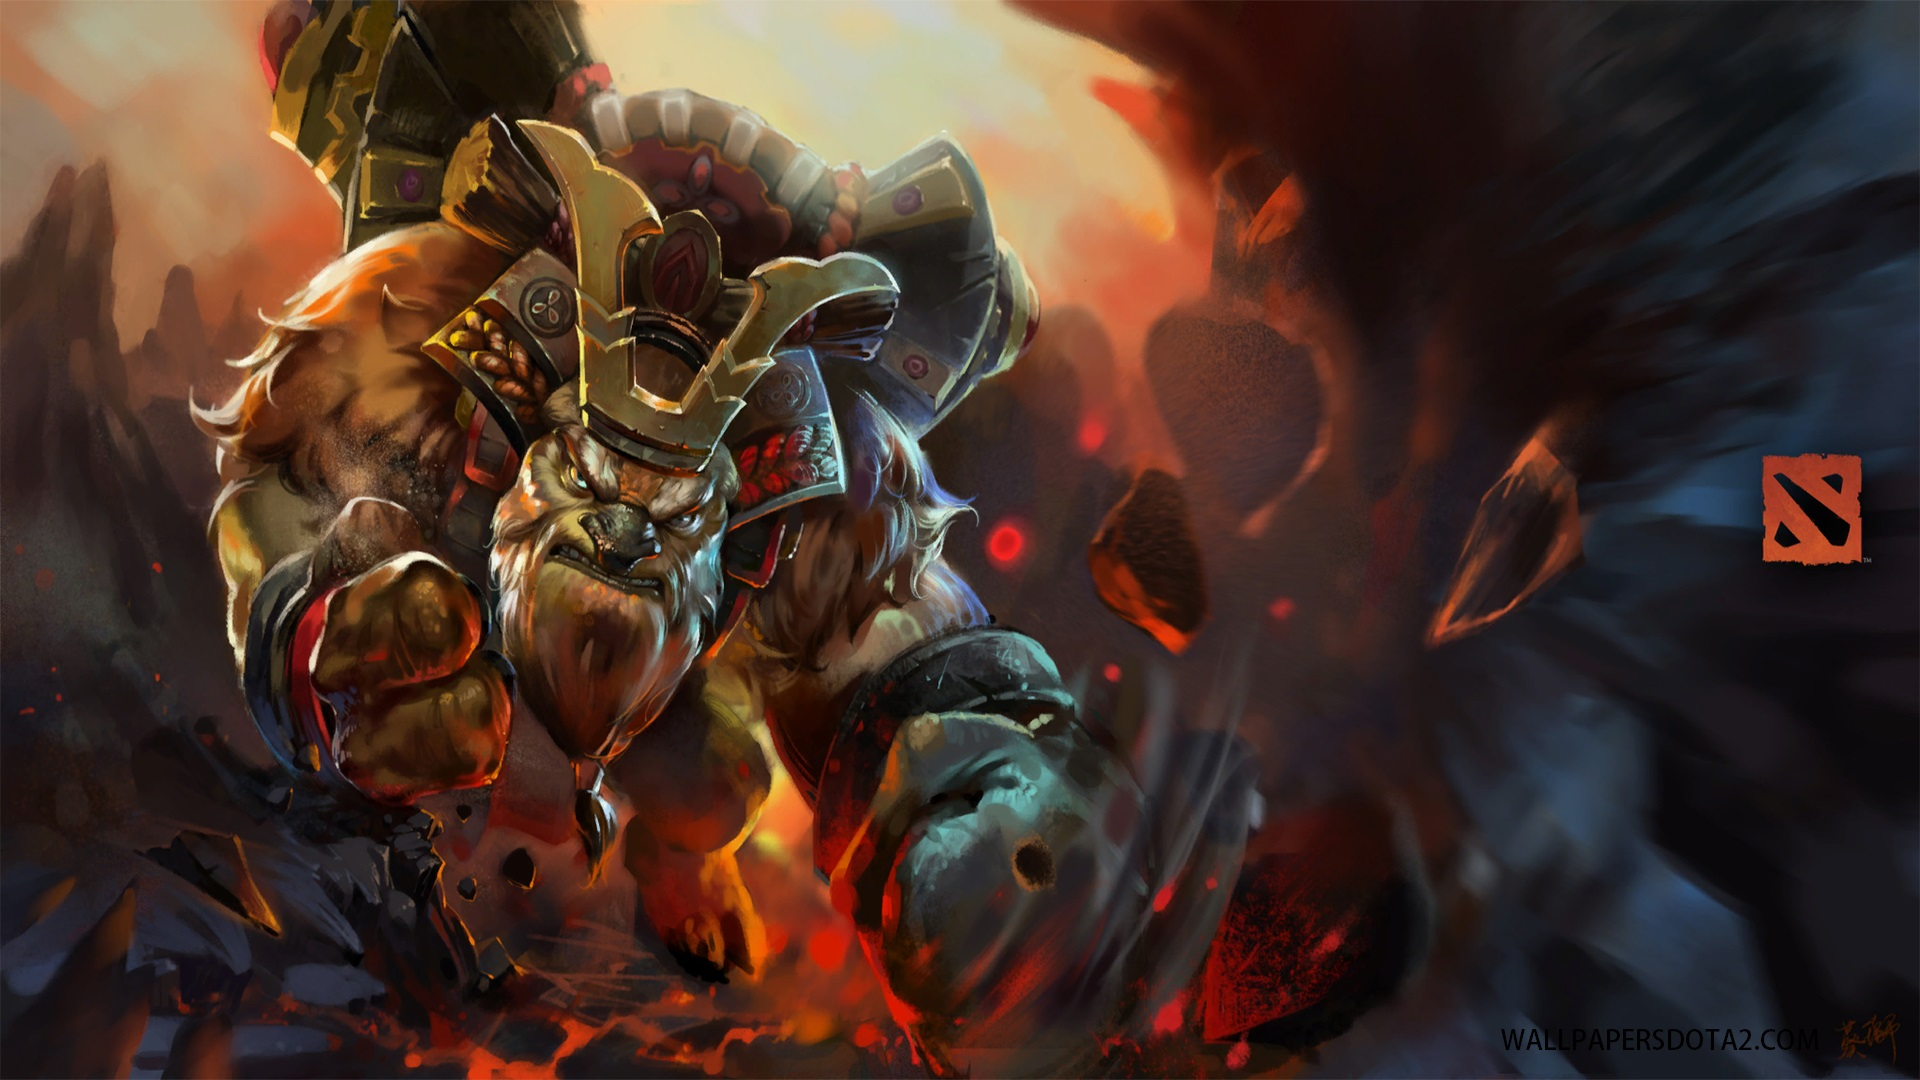 earthshaker samurai soul dota 2 high resolution desktop